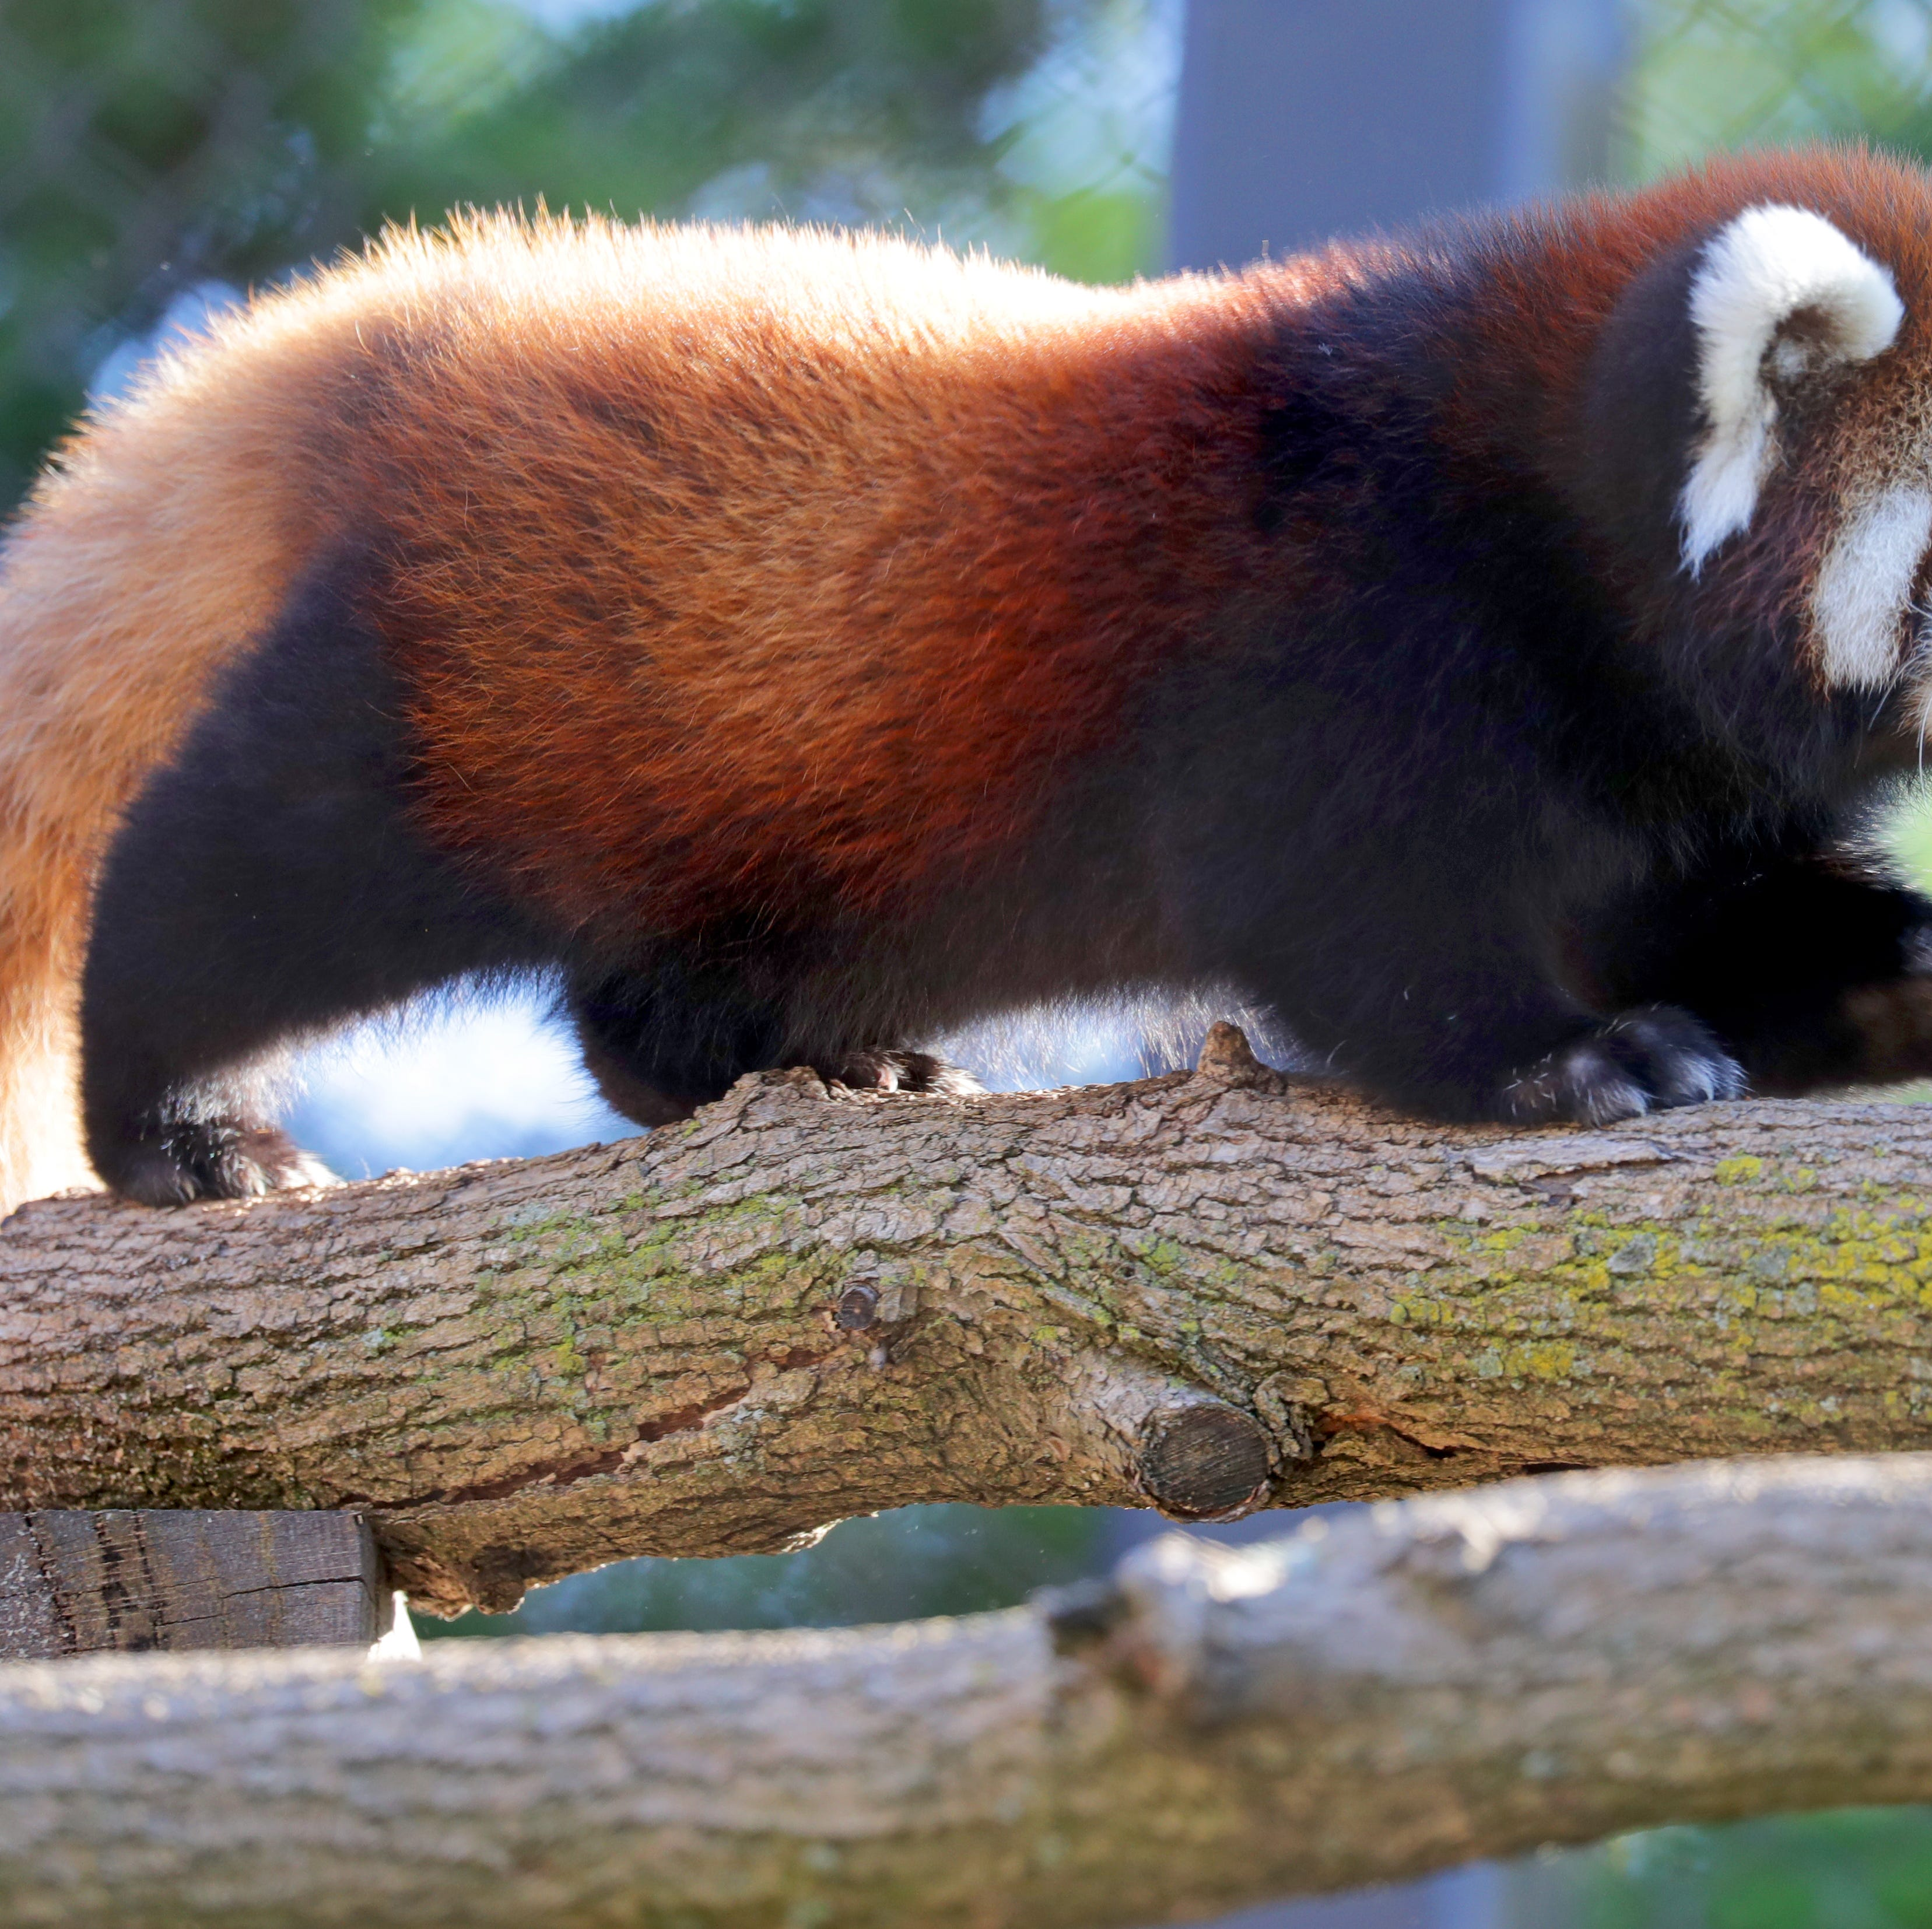 Milwaukee County Zoo said goodbye to a baby red panda and an orangutan as a part of species survival program